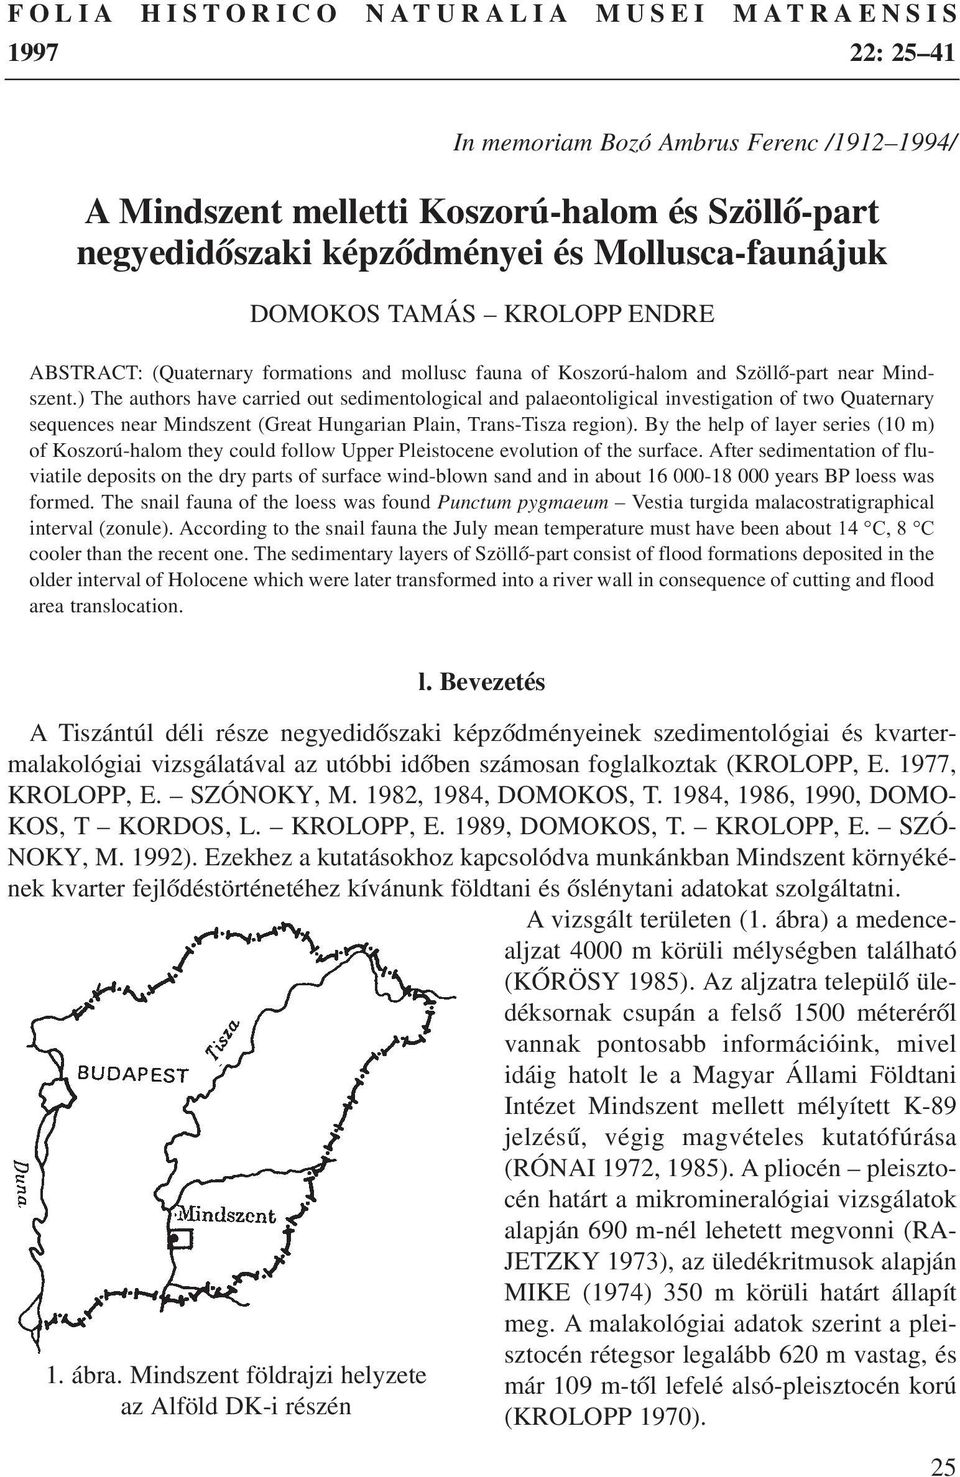 ) The authors have carried out sedimentological and palaeontoligical investigation of two Quaternary sequences near Mindszent (Great Hungarian Plain, Trans-Tisza region).